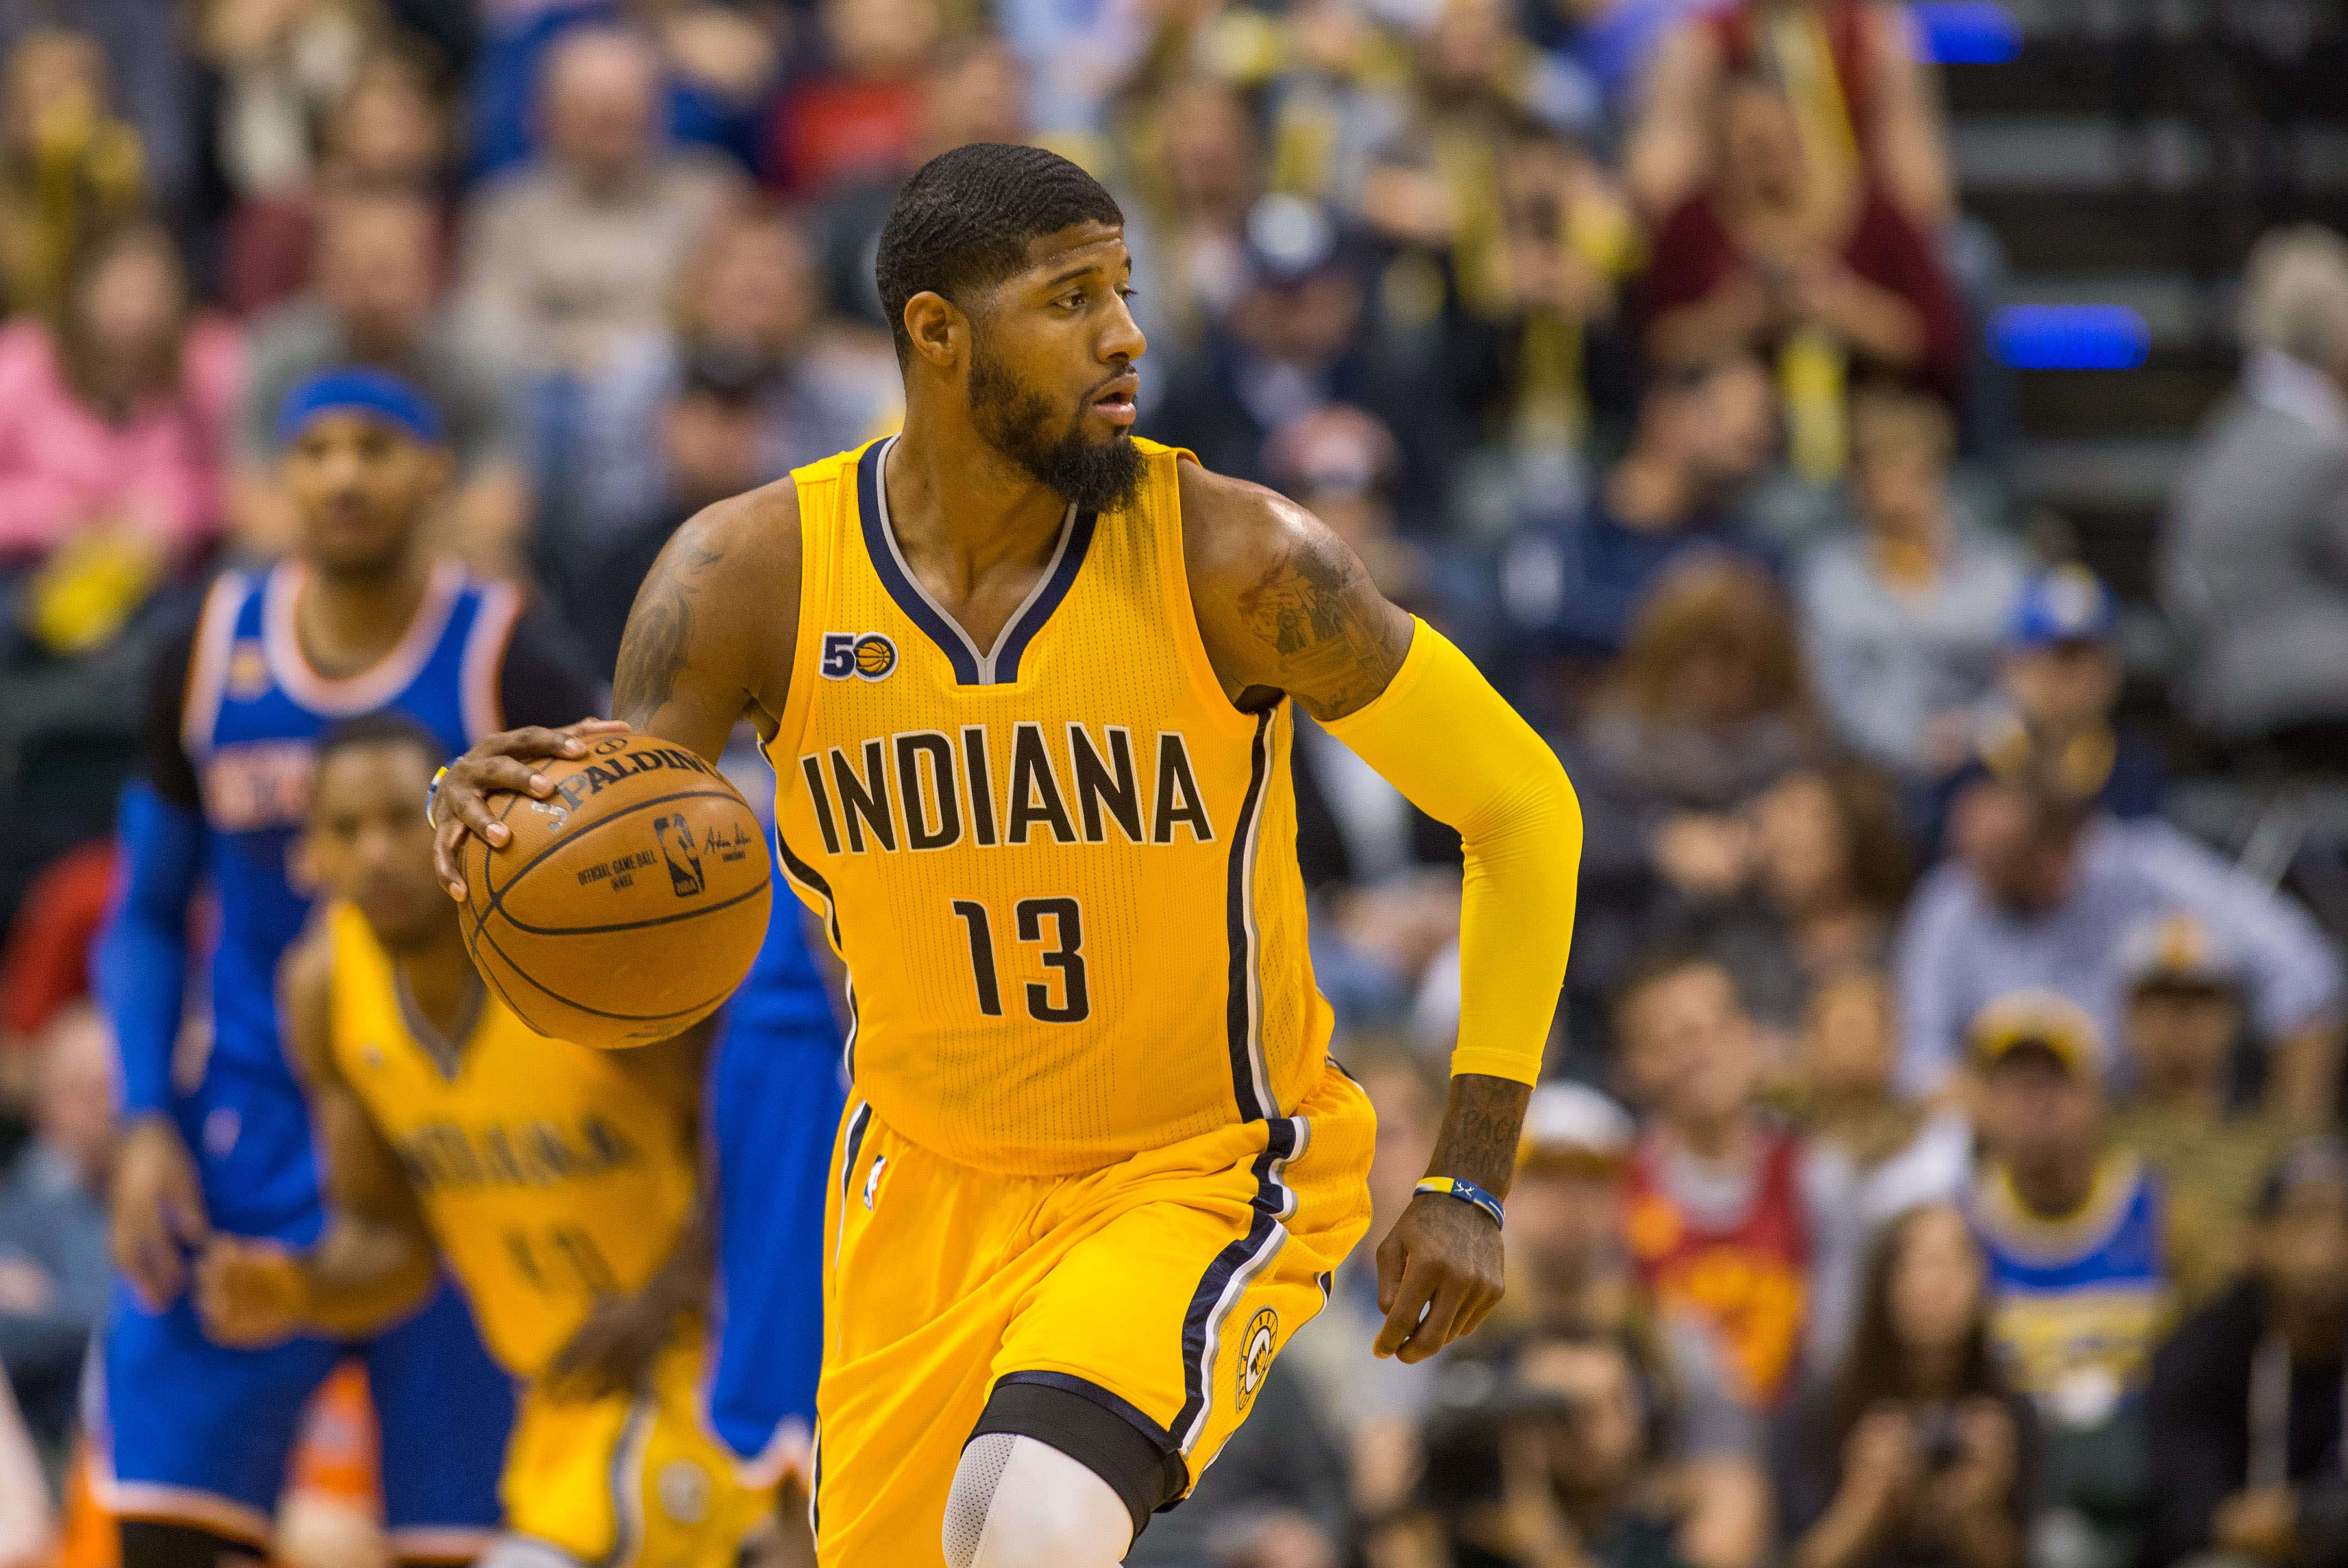 Boston Celtics Trade Rumors: Pacers' superstar Paul George is desirable